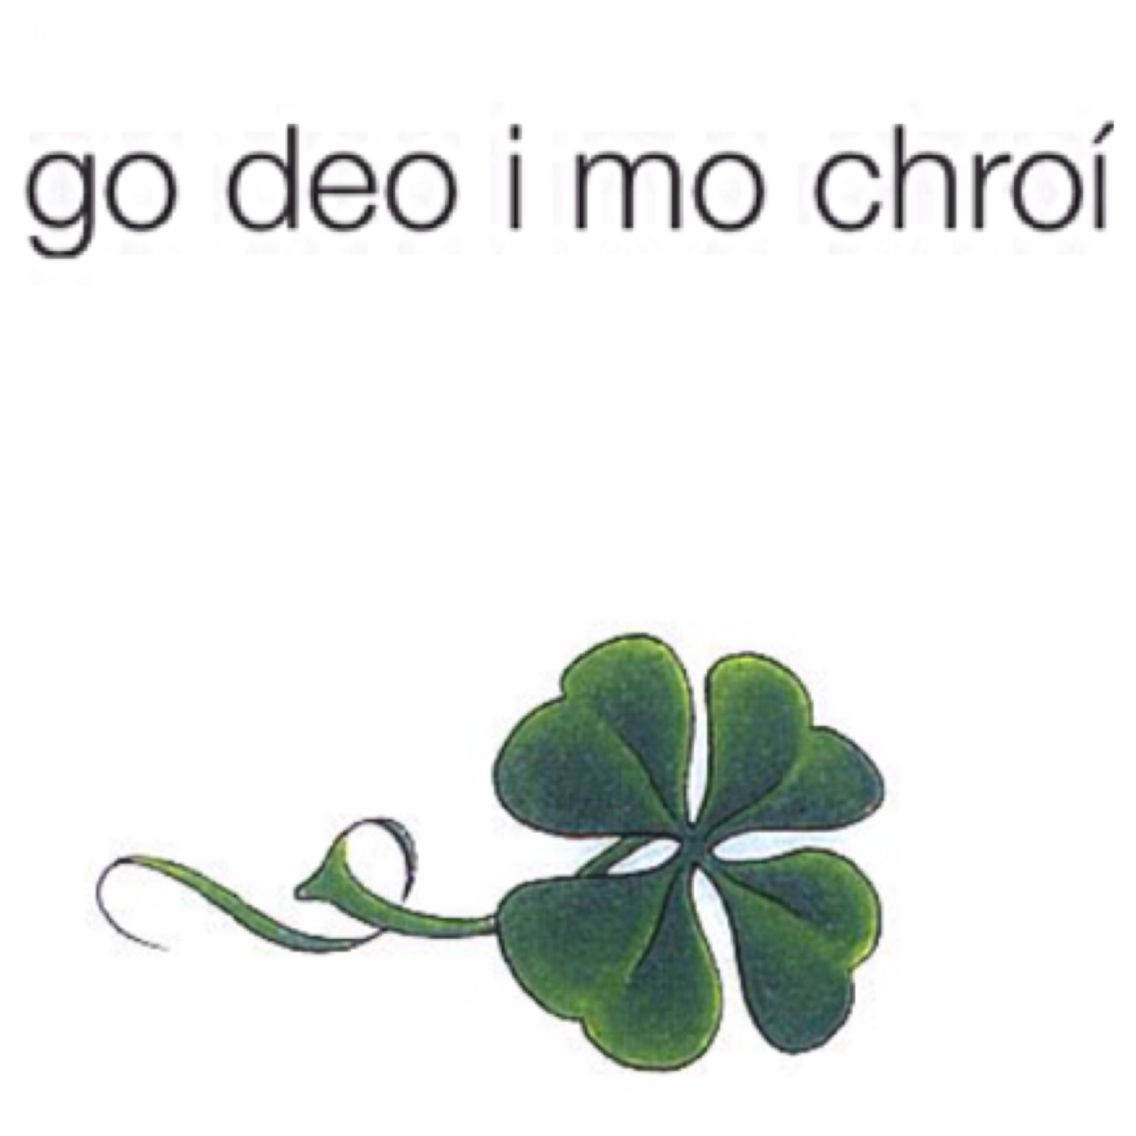 Another tattoo idea in honor of my grandma it says forever in my another tattoo idea in honor of my grandma it says forever in my heart in irish gaelic and then ill have that four leaf clover underneath biocorpaavc Gallery